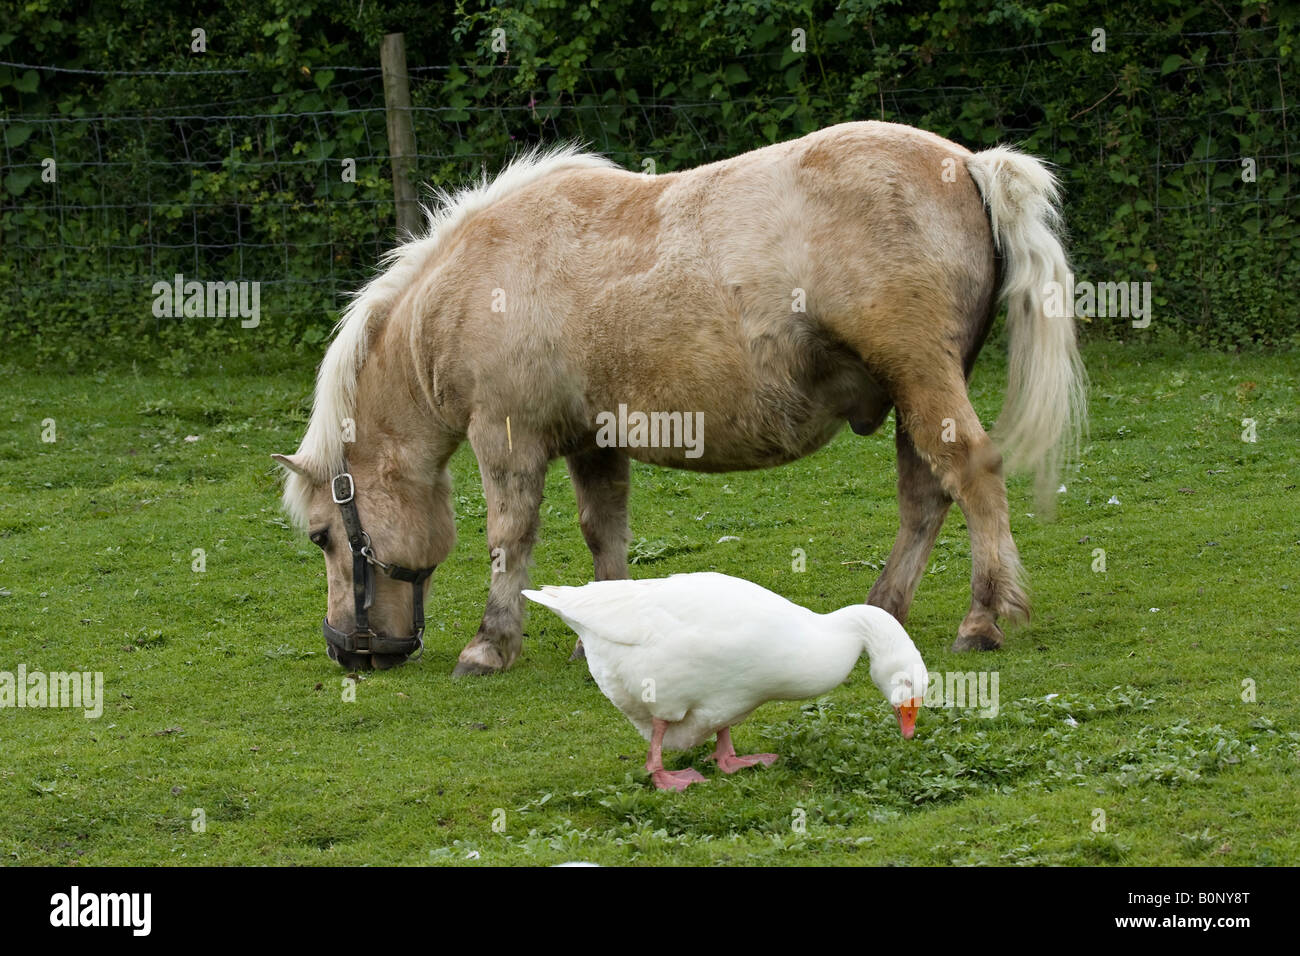 Pony and Aylesbury duck grazing together - Stock Image